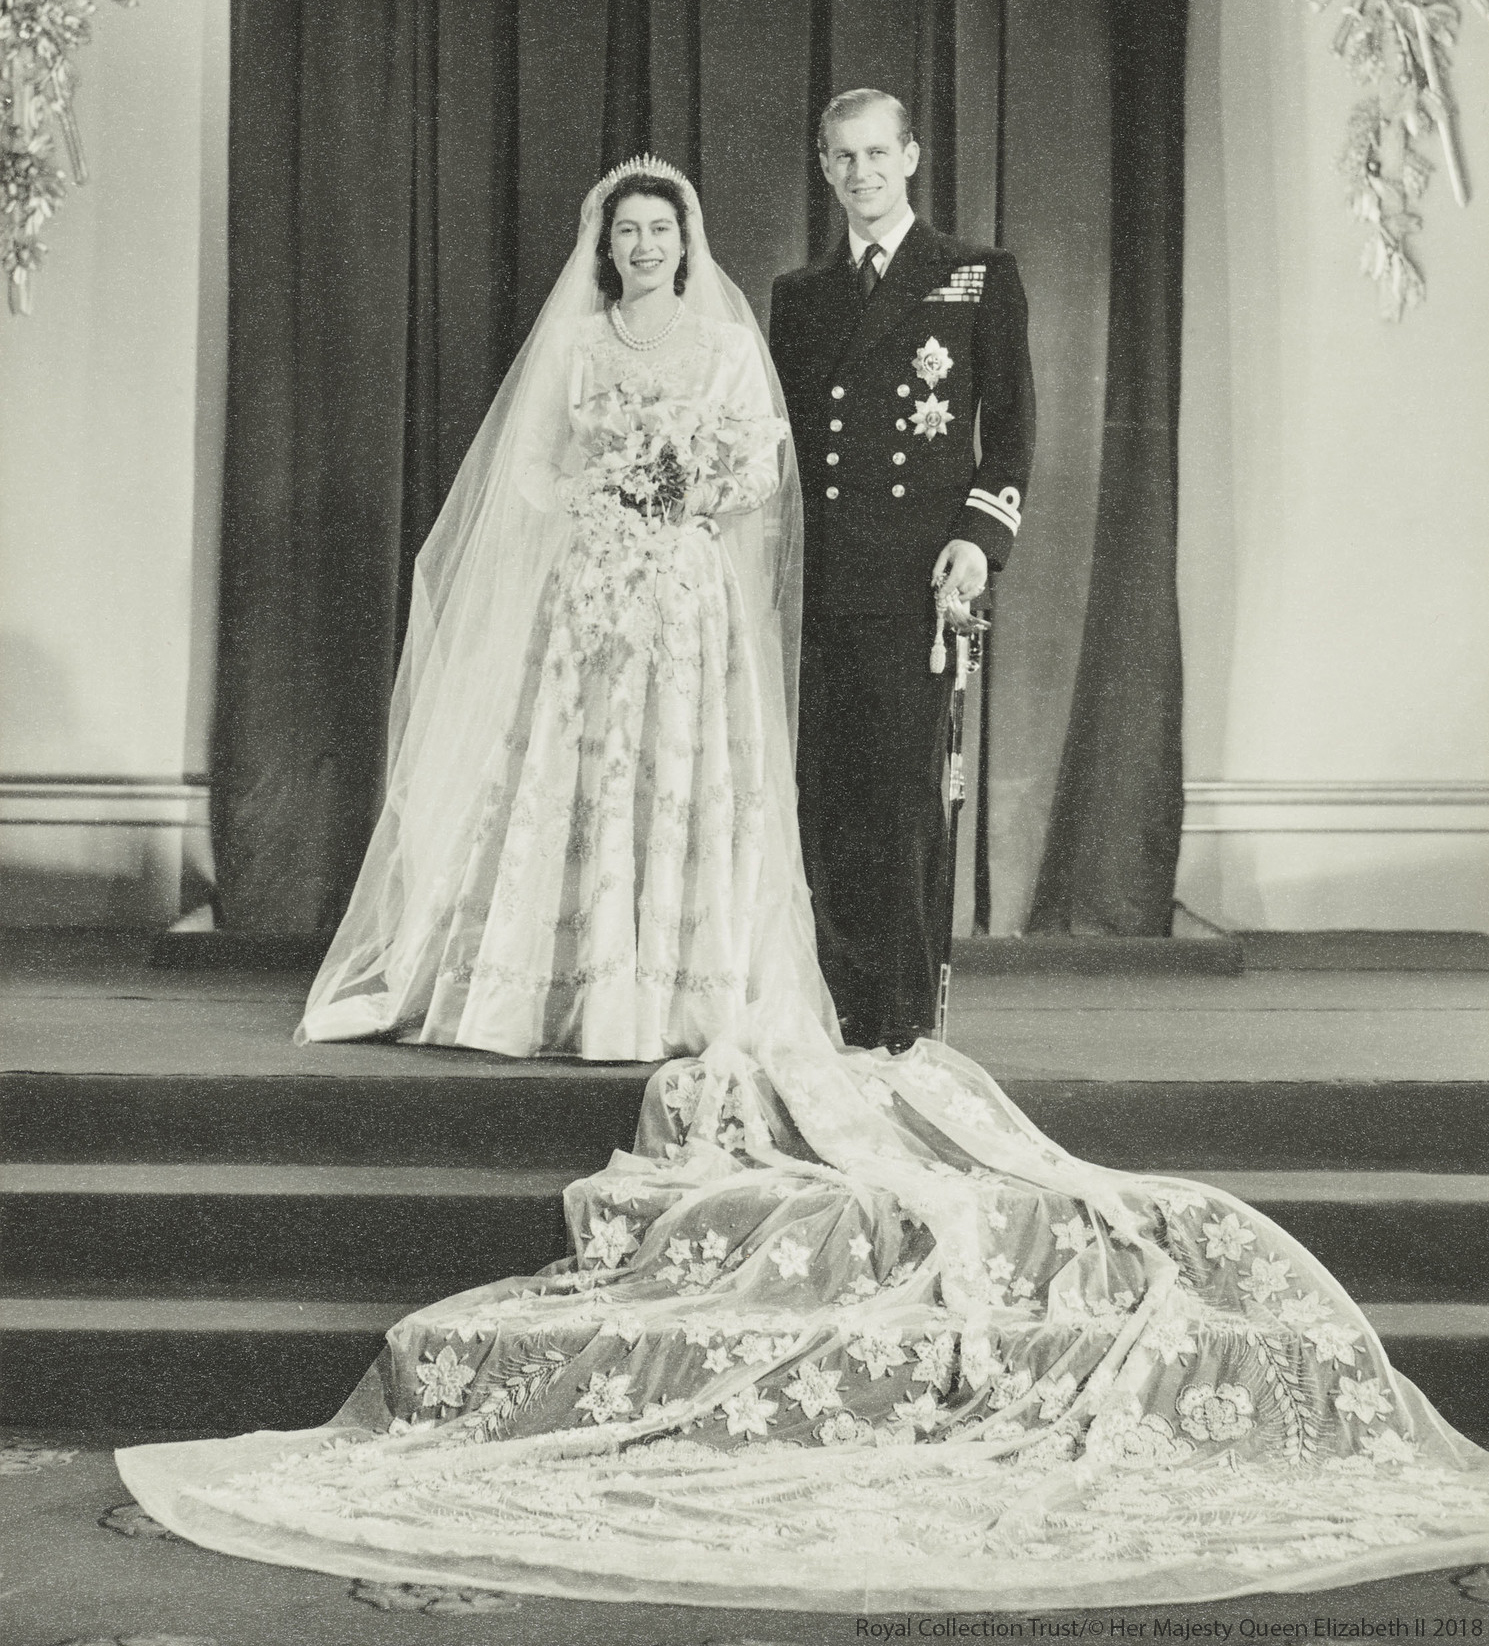 The Queen's Wedding Dress